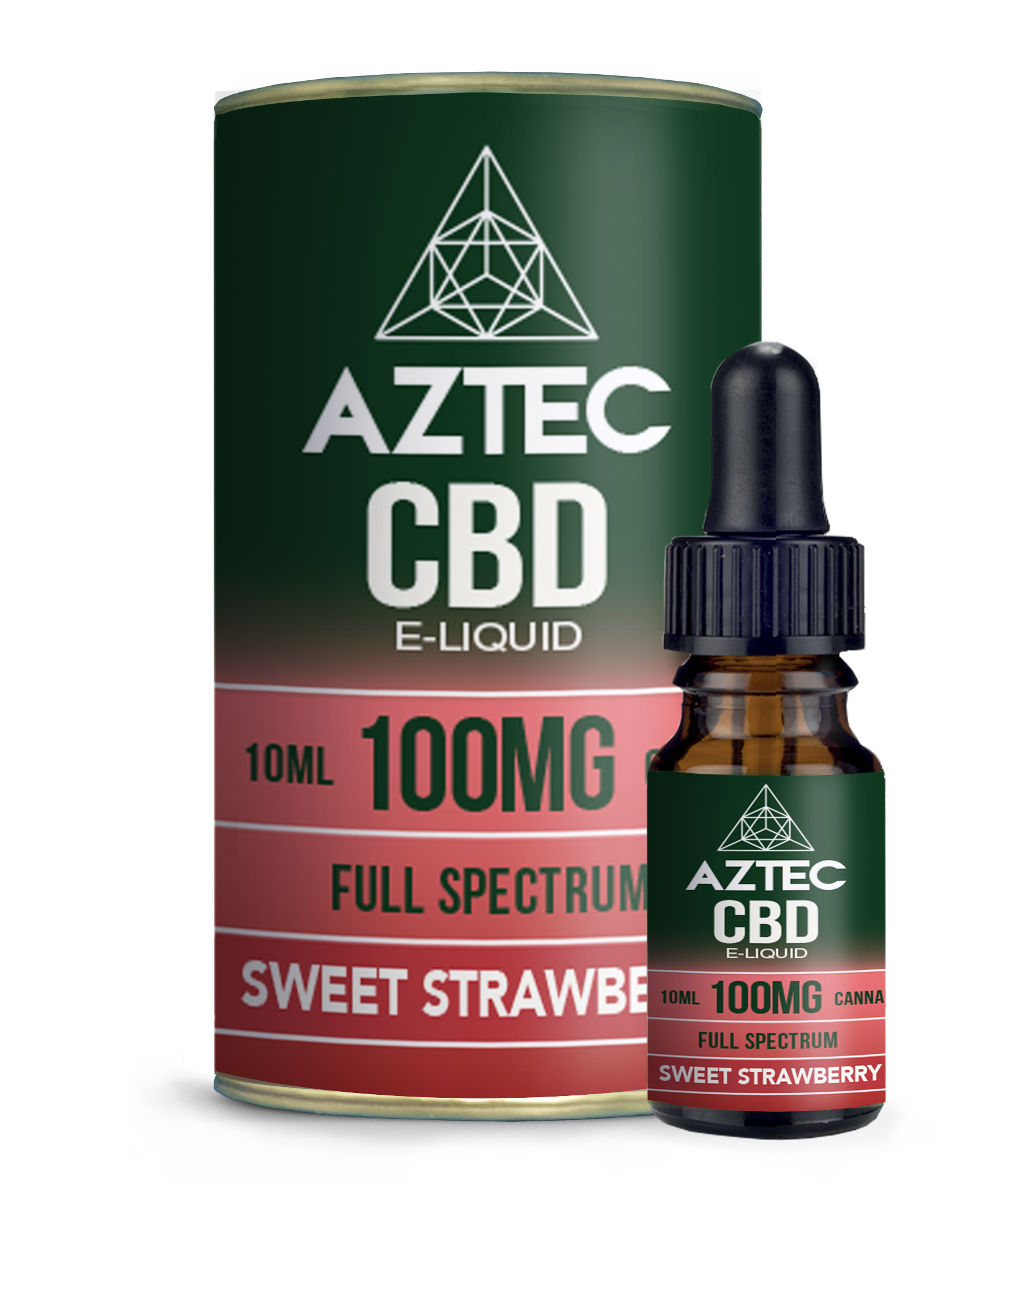 Aztec CBD Strawberry E-Liquid 10ml